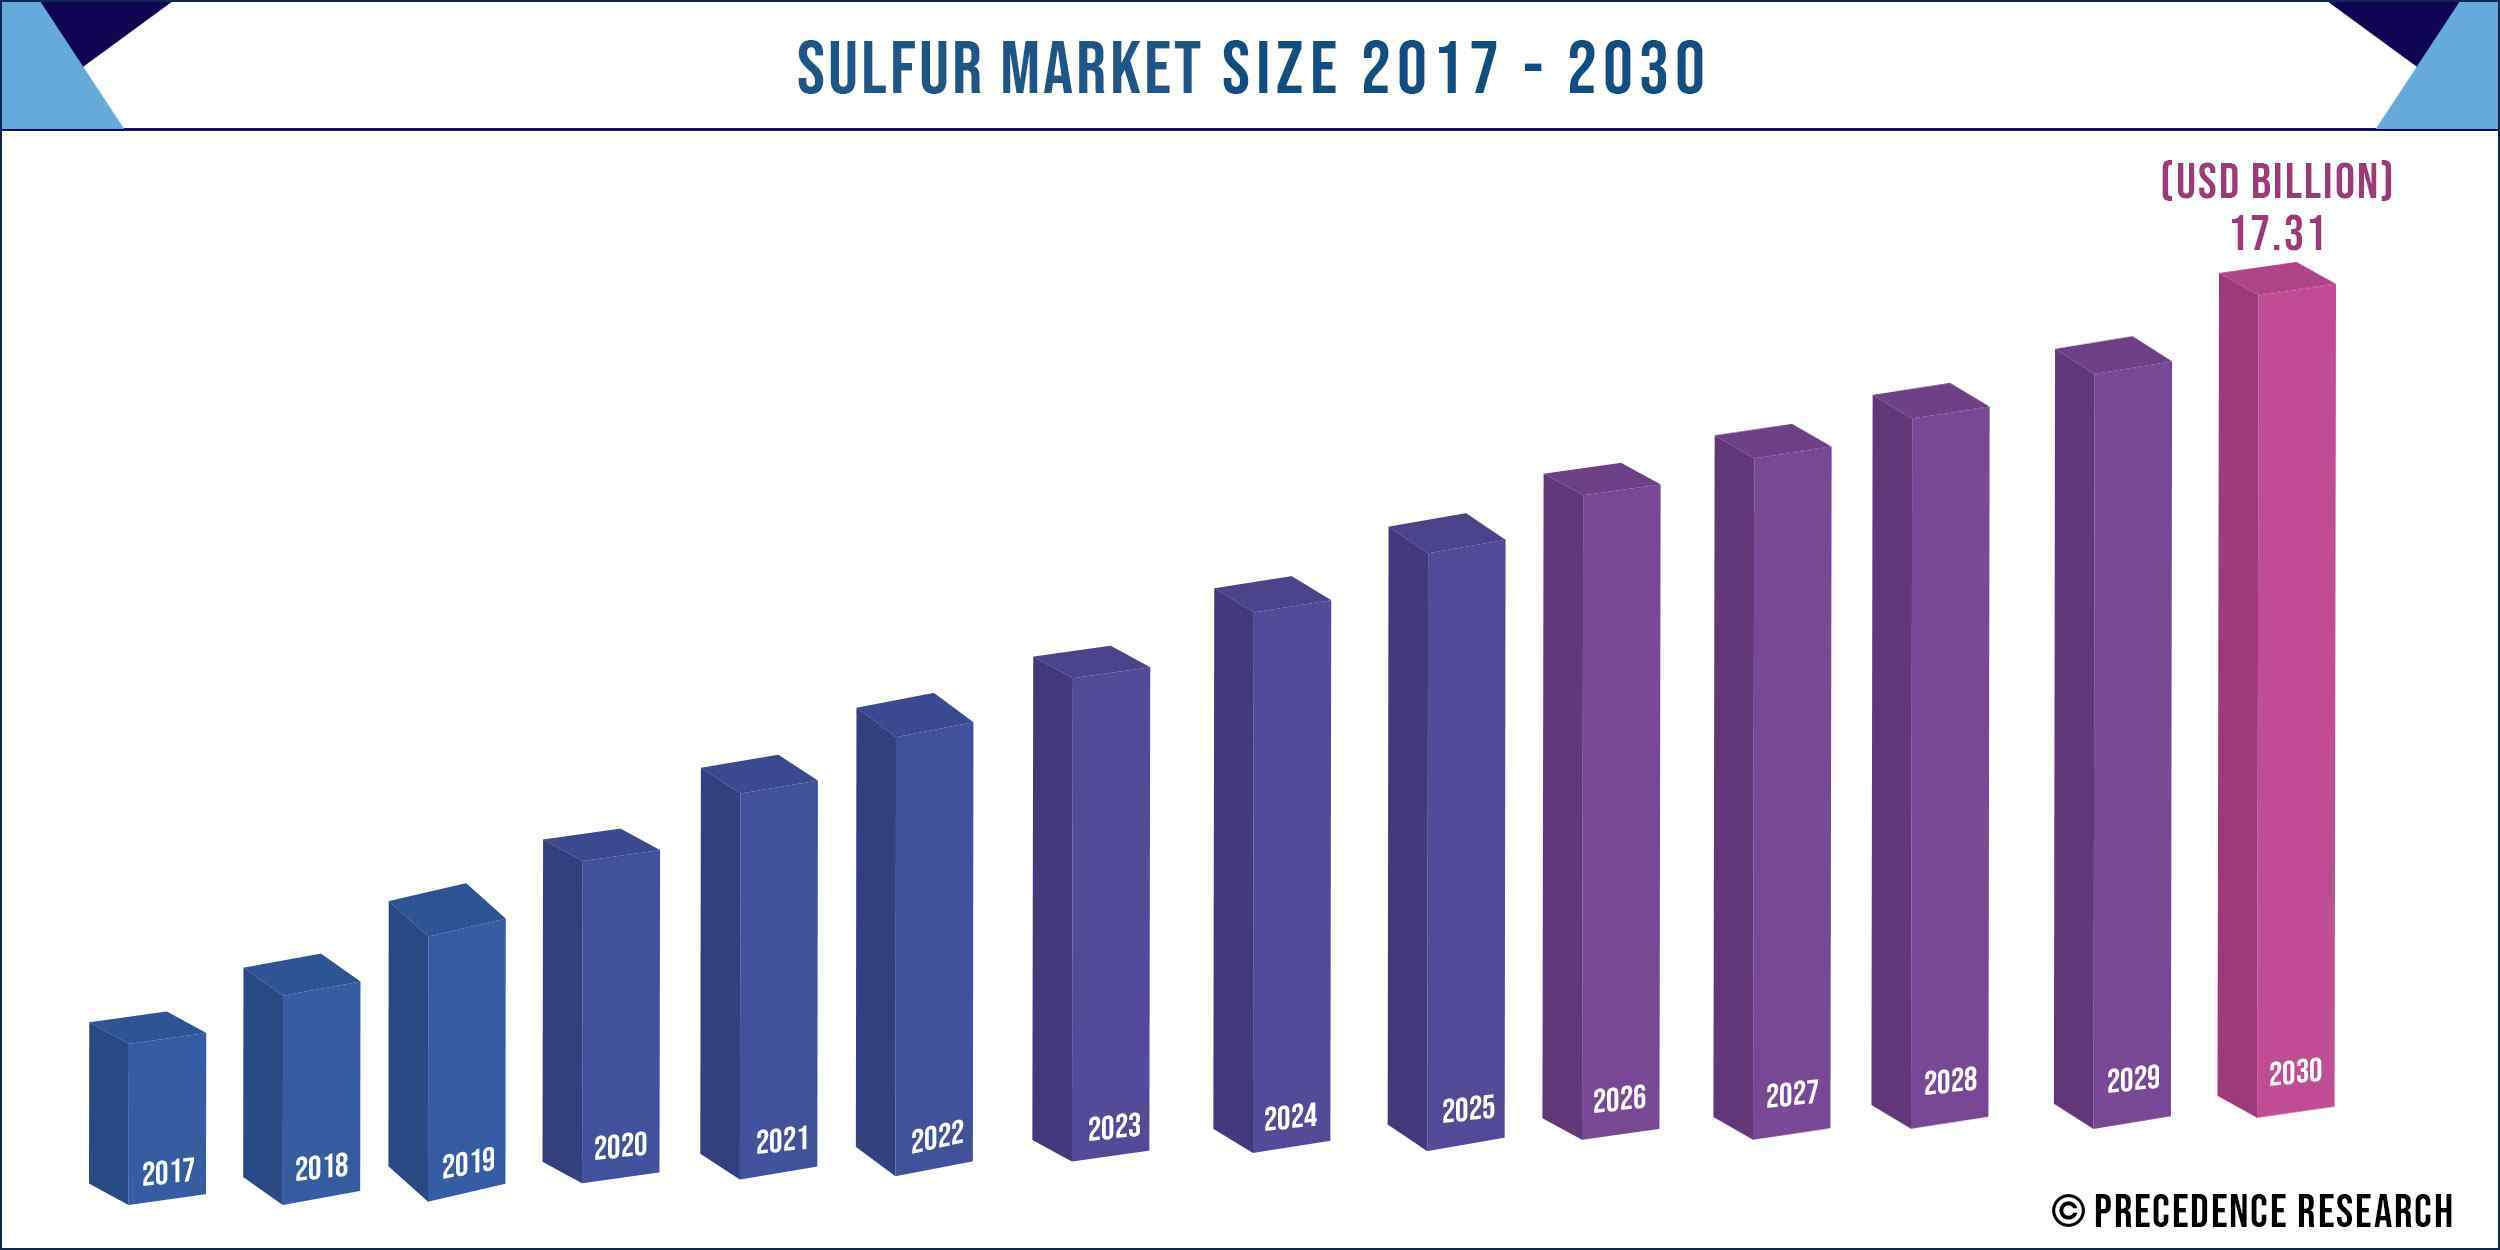 Sulfur Market Size 2017 to 2030